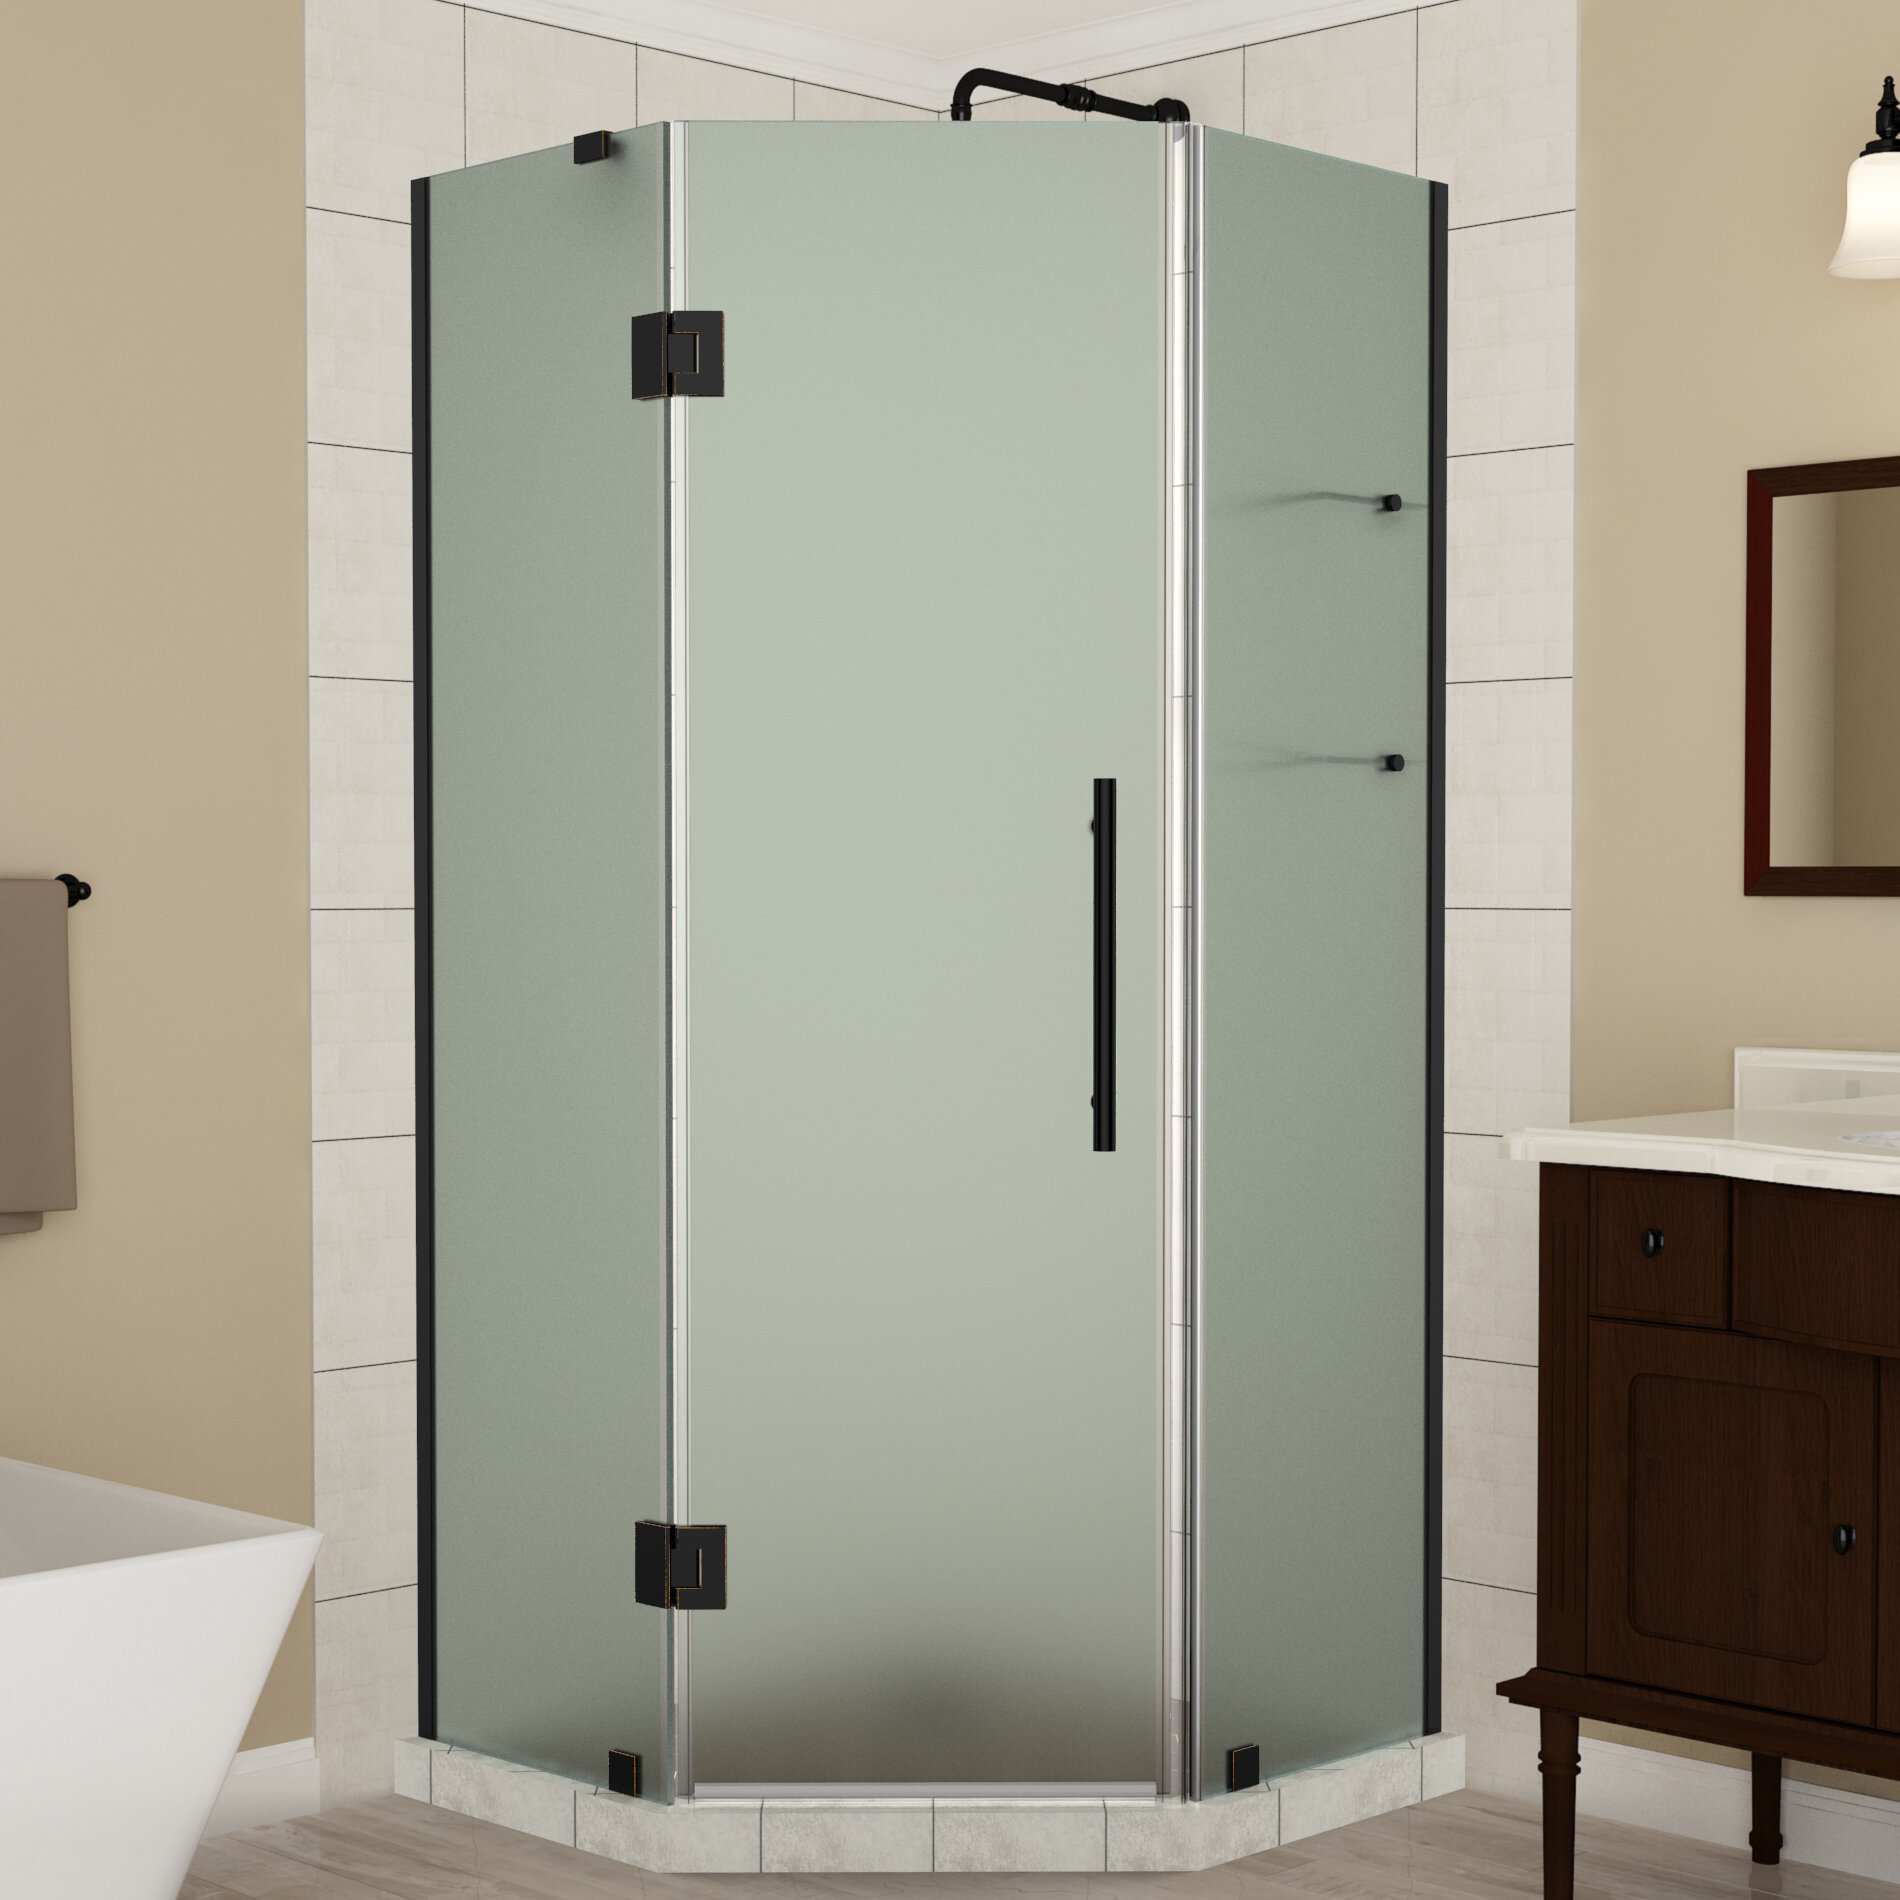 Merrick Gs Frameless 36 X 72 Neo Angle Hinged Shower Enclosure